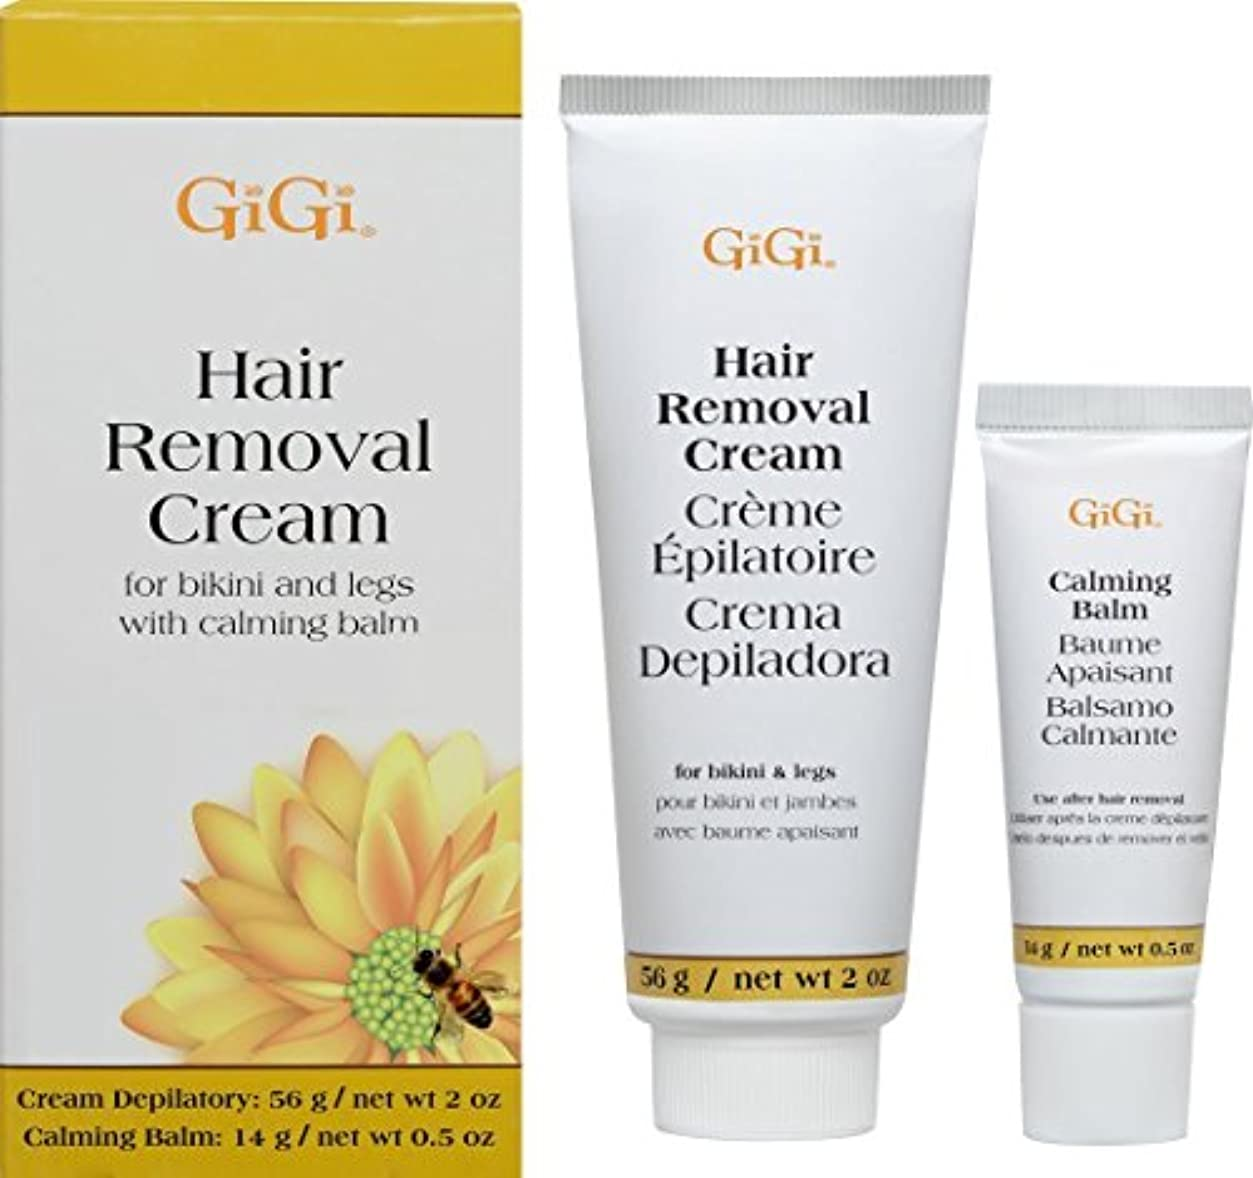 ベッドを作る目立つ慈悲深い(1) - Gigi Hair Removal Cream W/Balm For Bikini & Legs